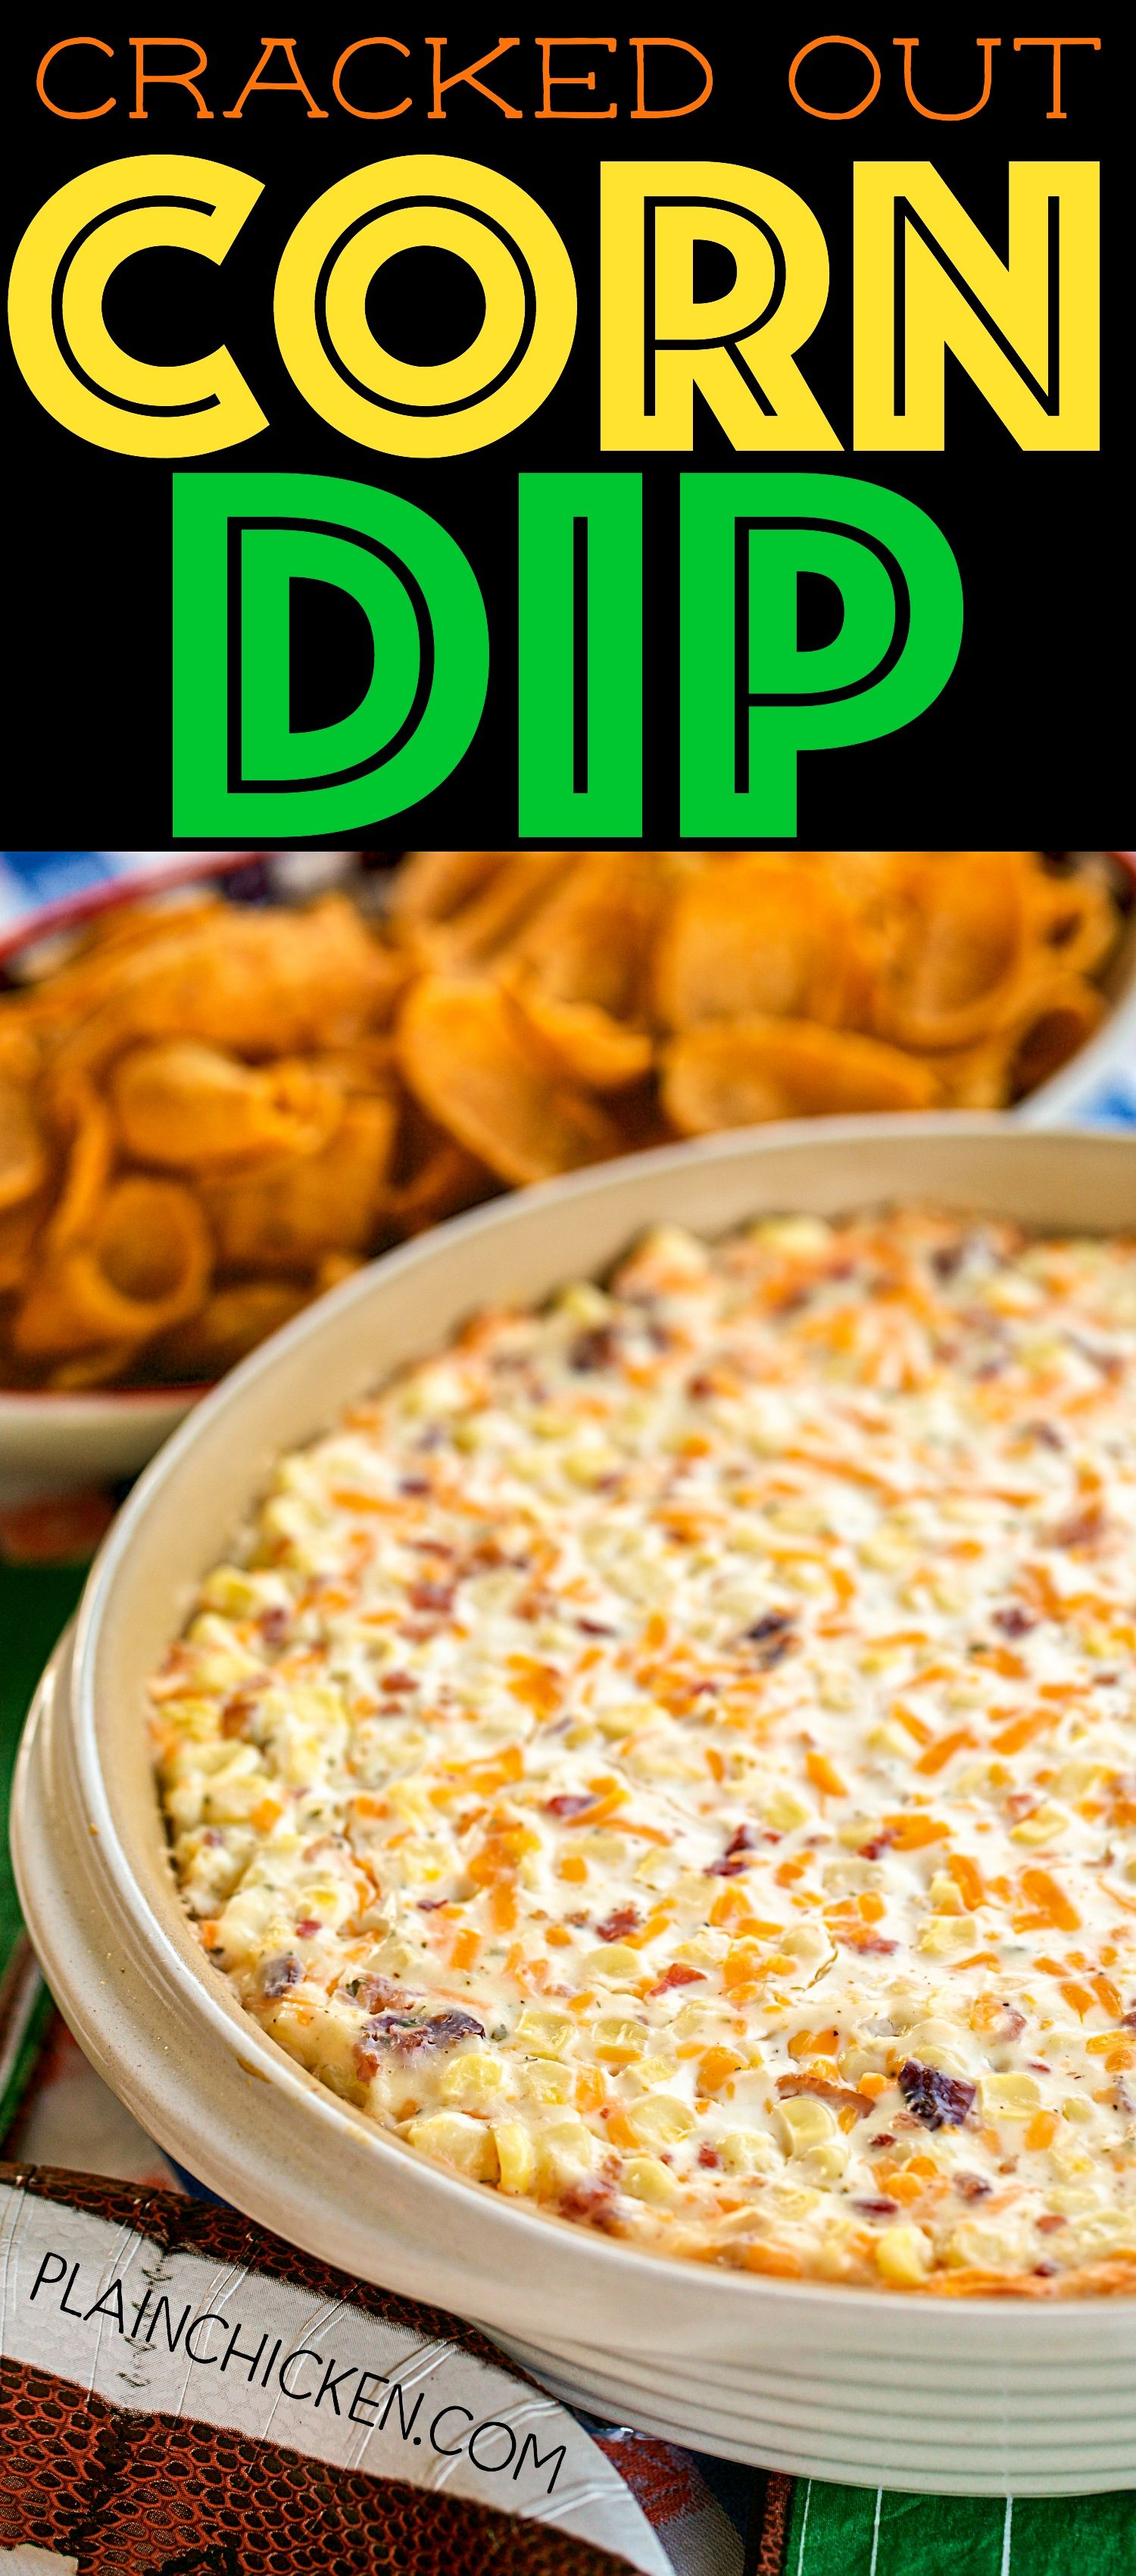 Cracked Out Corn Dip {Football Friday} - Plain Chicken